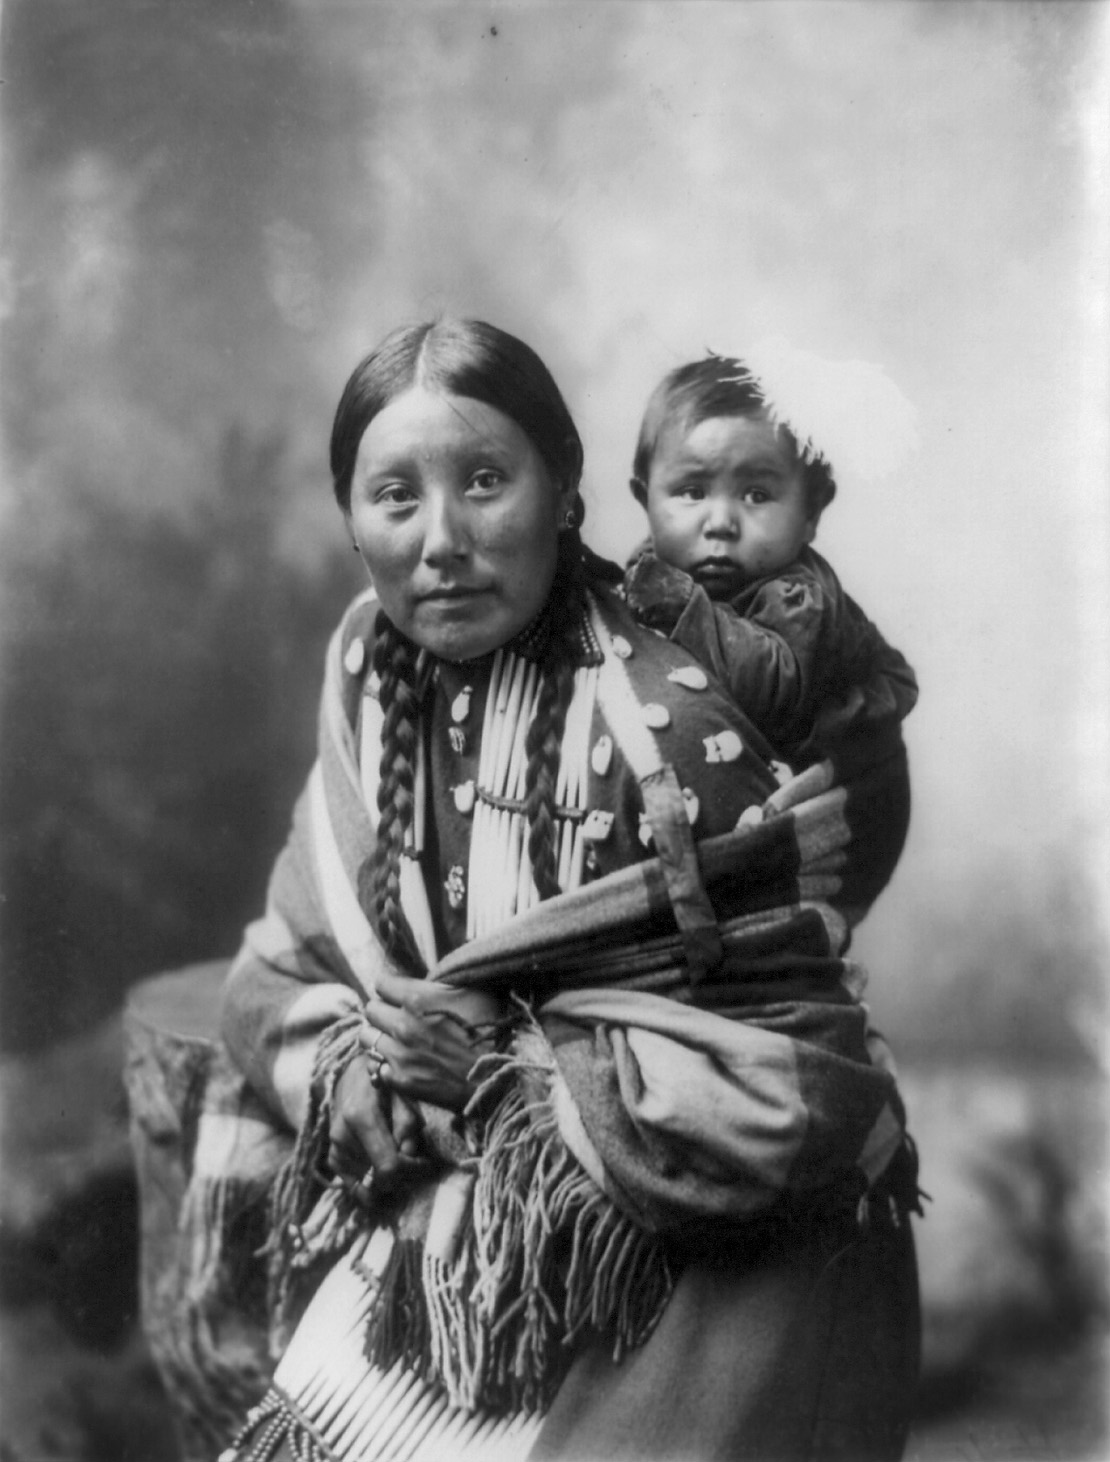 comanche black single women Rudolph fischer (1852 - 1941) was a white captive of the comanche tribe for decades abducted at age 13 by a comanche war party near fredericksburg,texas he was adopted into the comanche tribe.